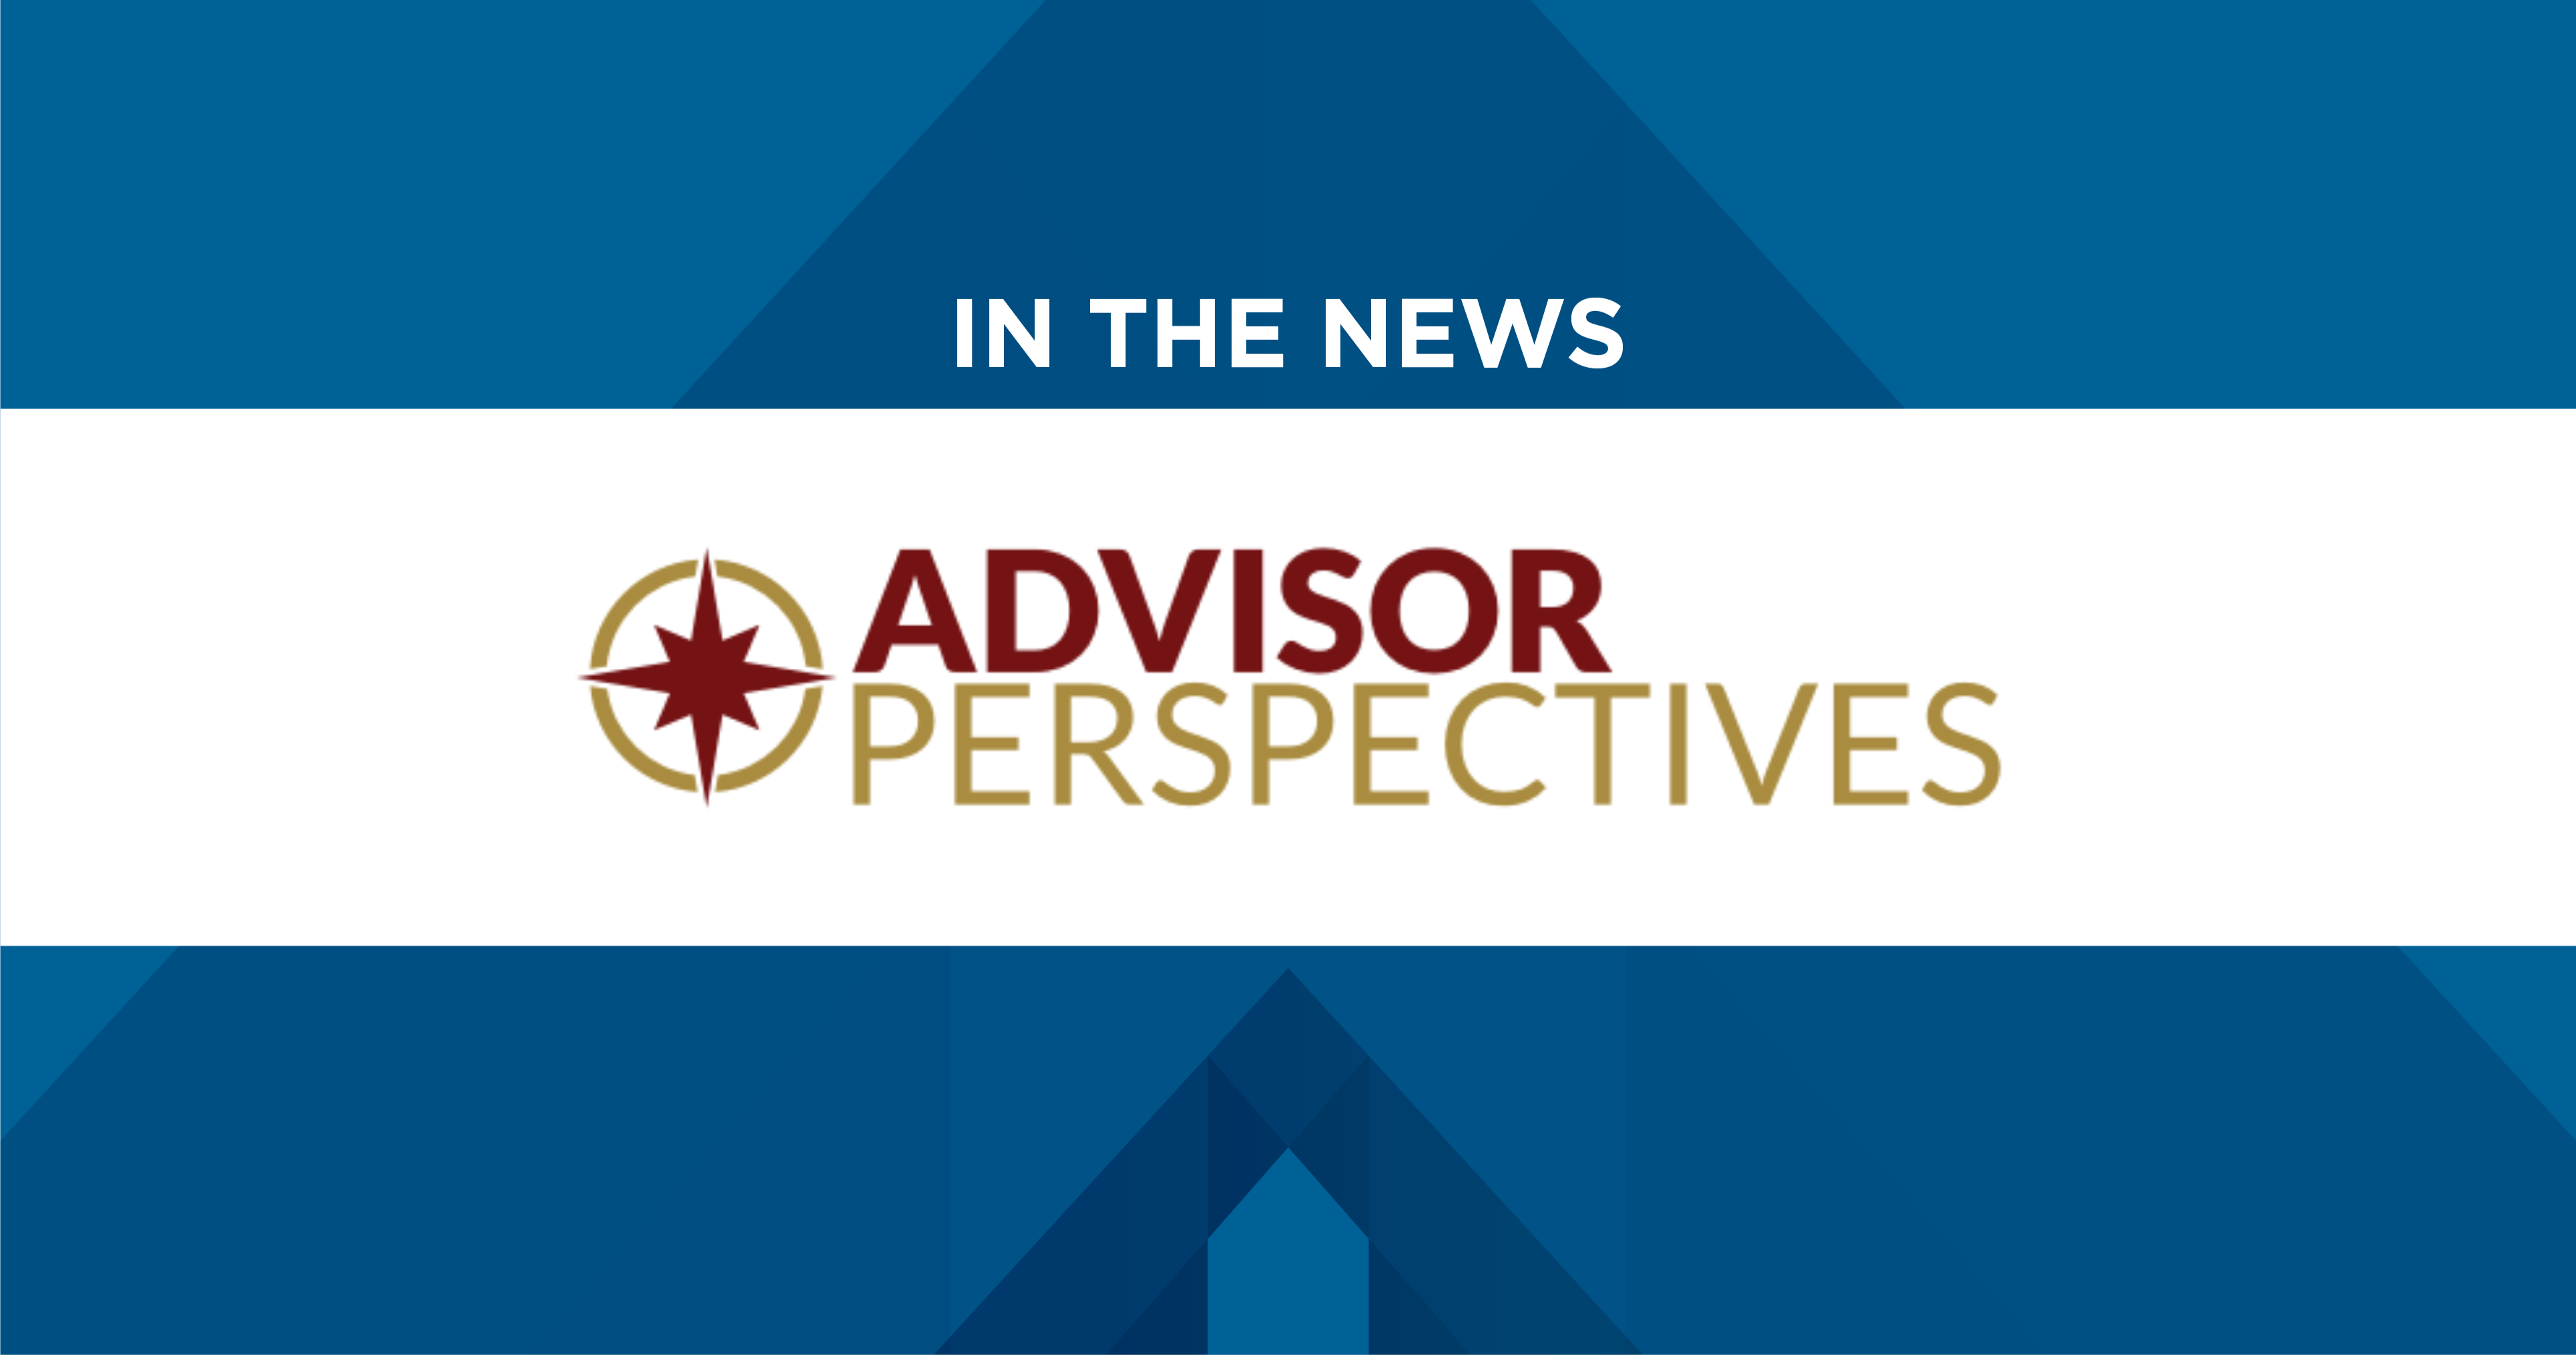 In the News: Advisor Perspectives